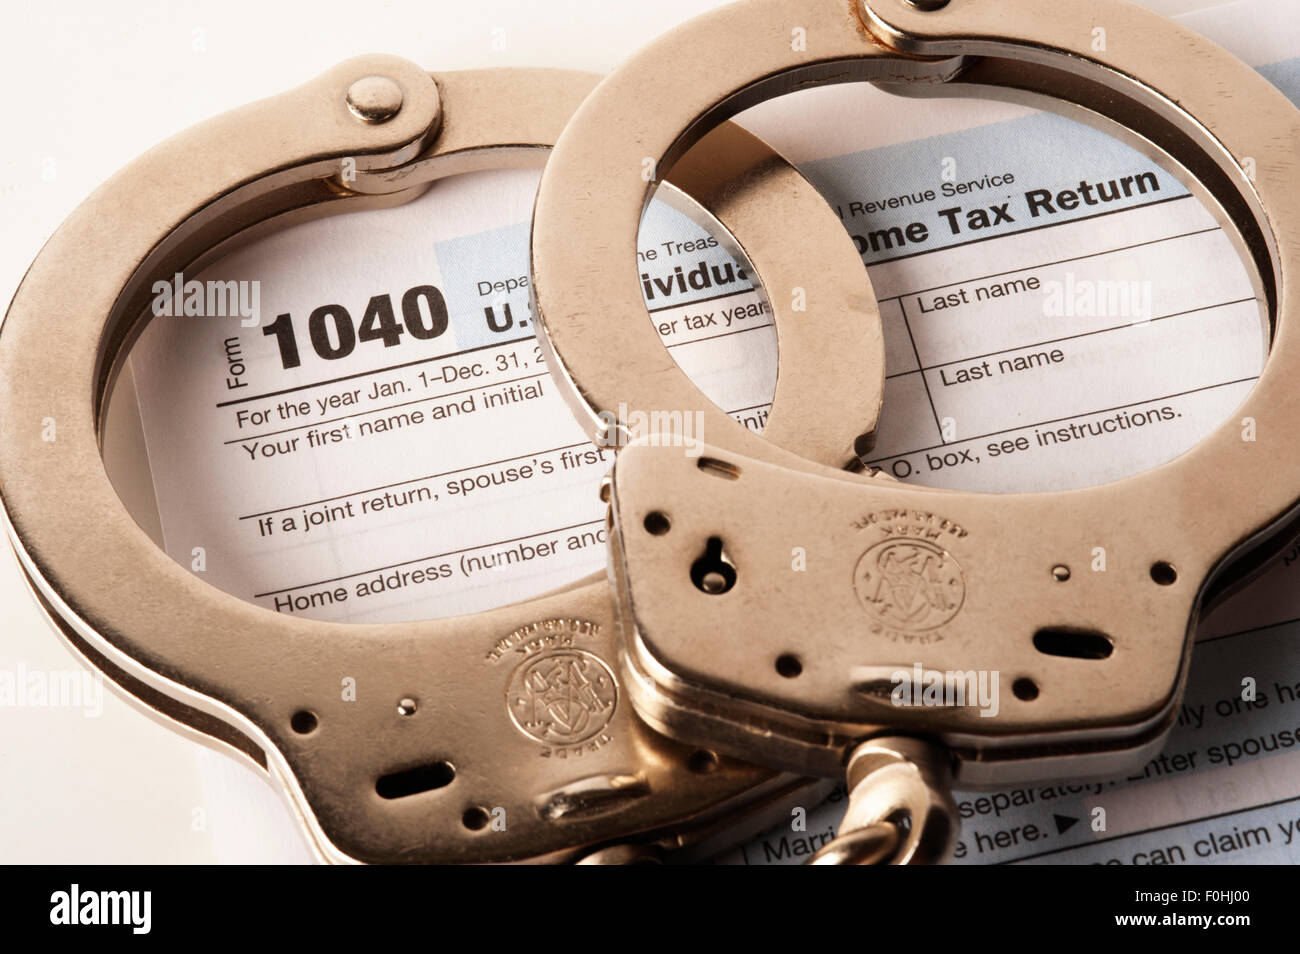 handcuffs on United States tax return 1040 warning on cheating - Stock Image